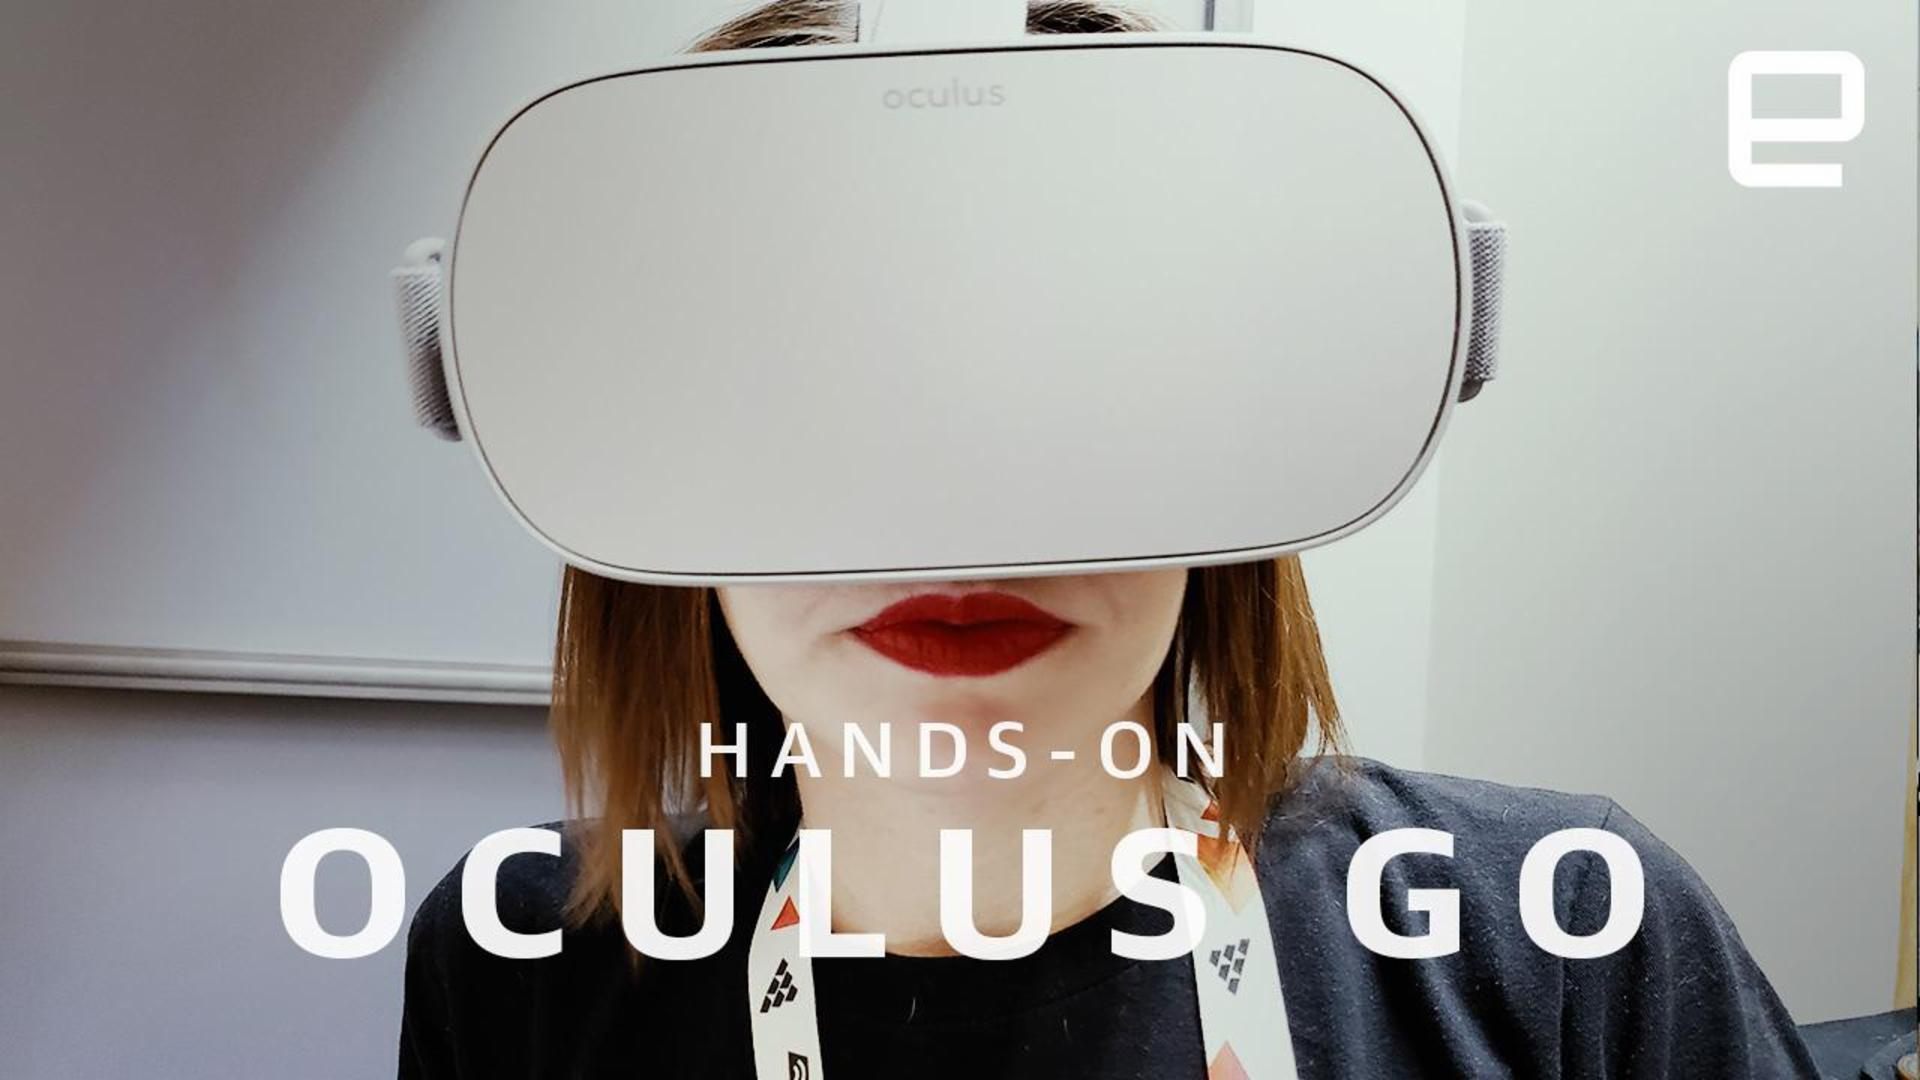 Hands-on with Oculus Go: Comfy, wireless VR